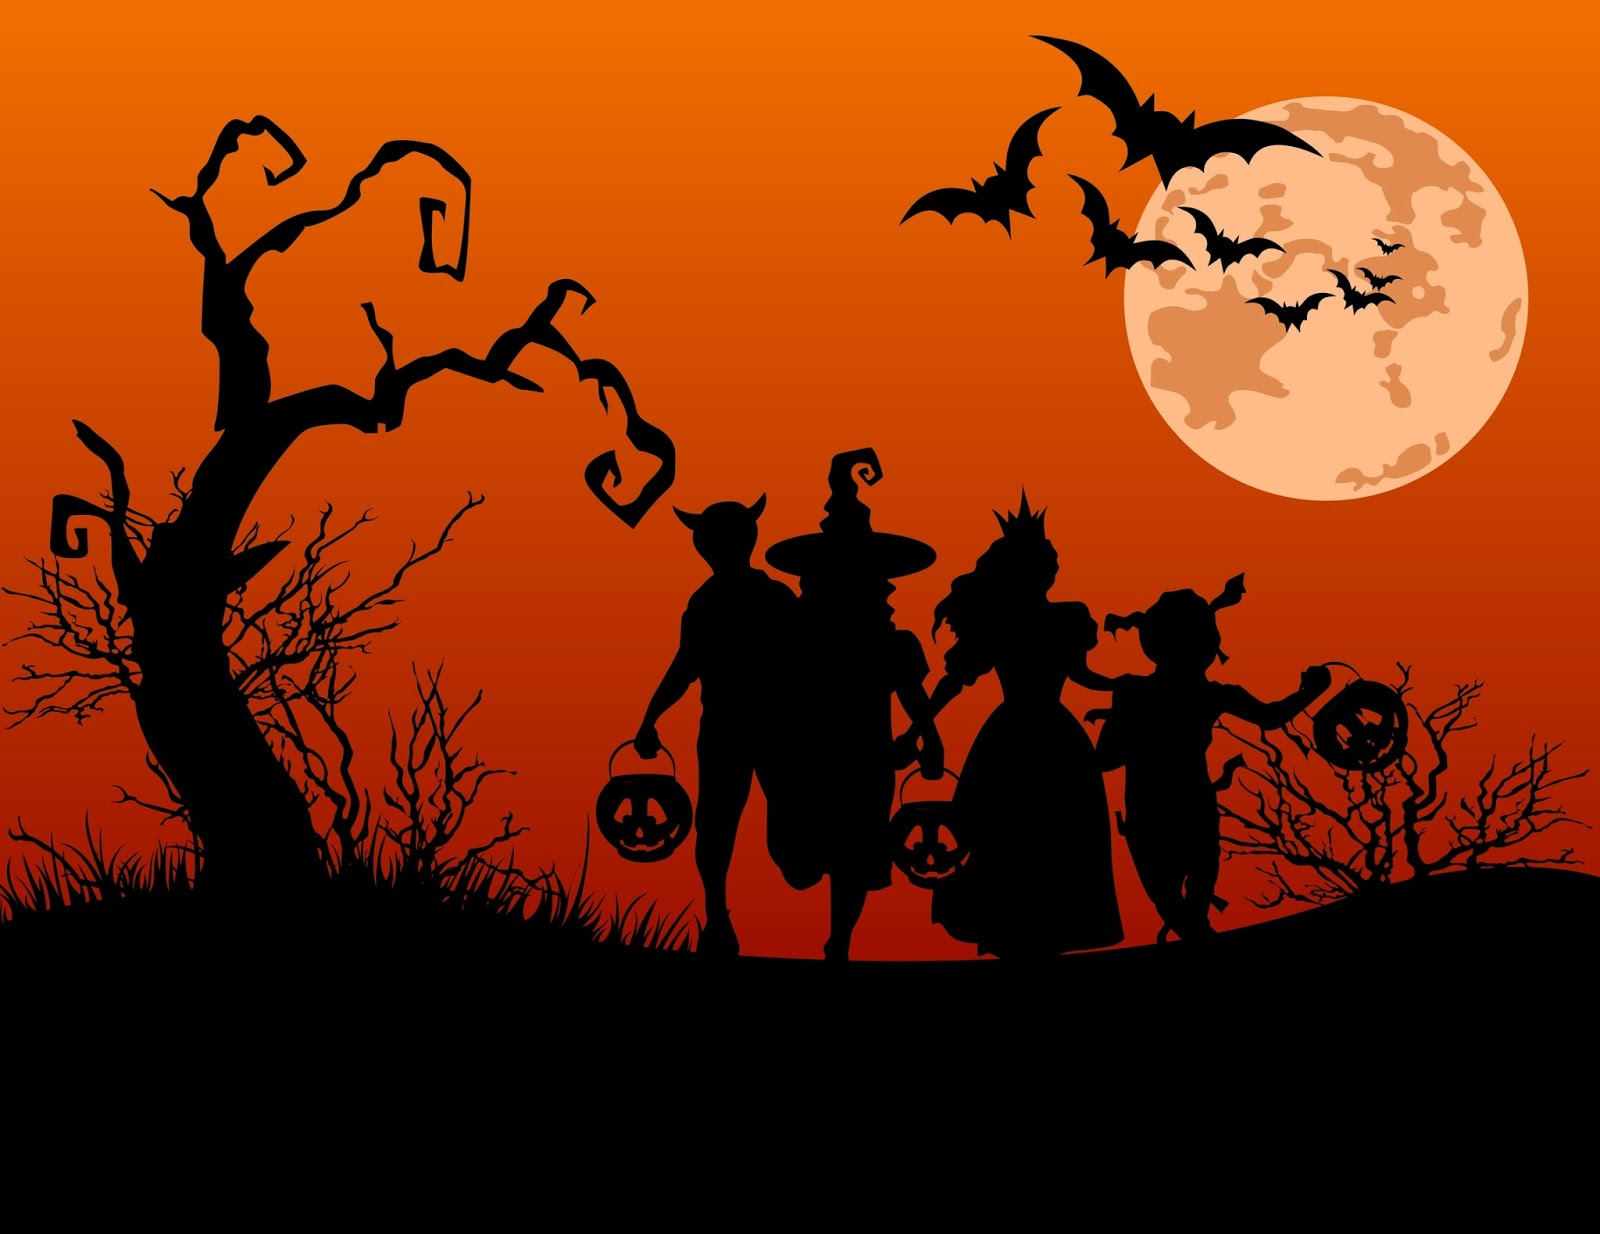 Happy Halloween Whatsapp Messages Are The Best Way To Send Messages To Your  Friends And Family Members On This Auspicious Occasion.